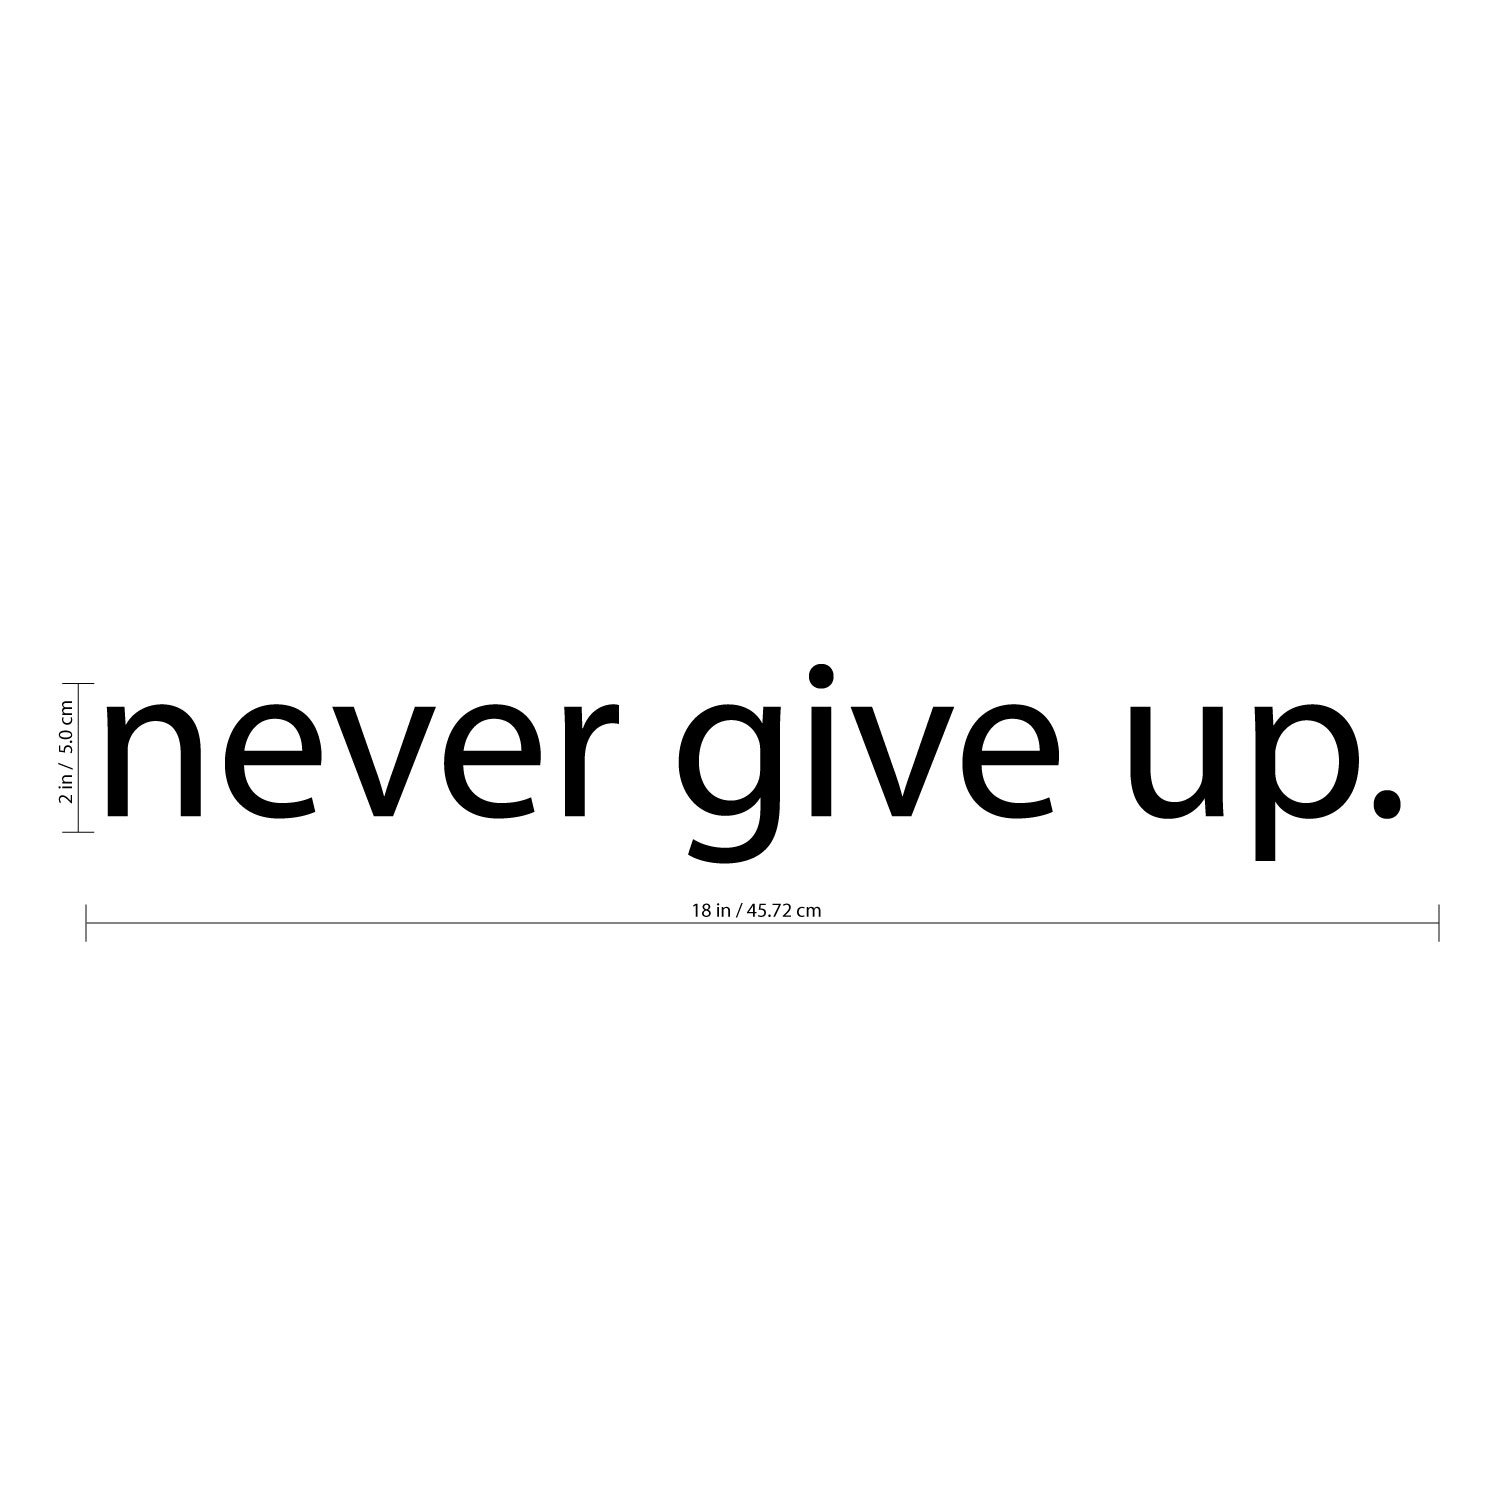 Never Give Up.. Over the Door Vinyl Wall Decal Sticker Art by Imprinted Designs (Image #3)